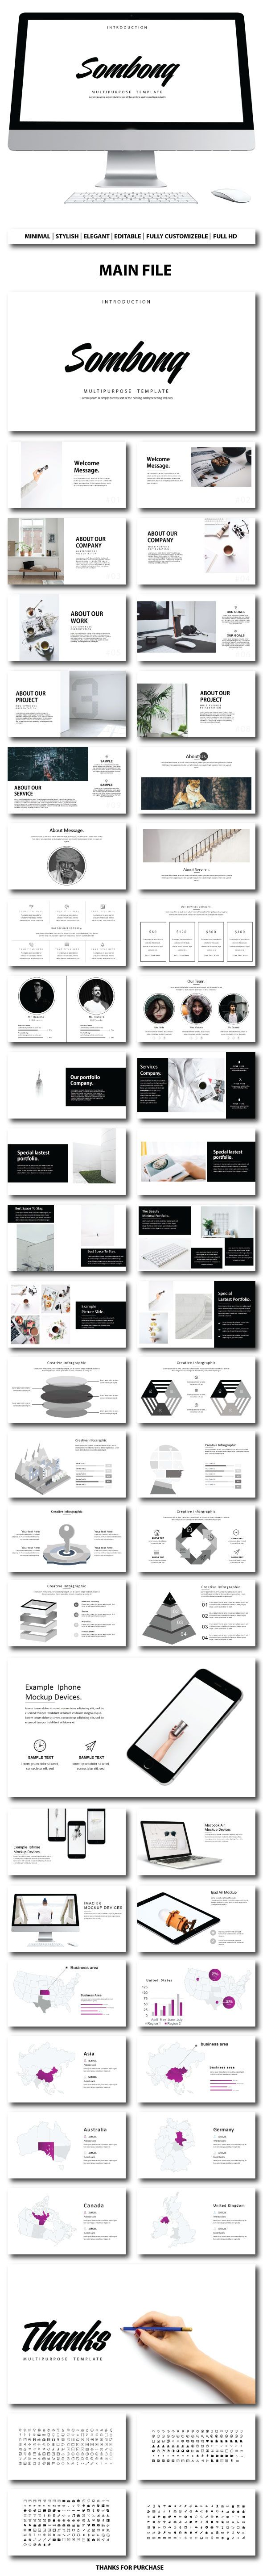 Sombong Presentation Template - #PowerPoint Templates Presentation Templates